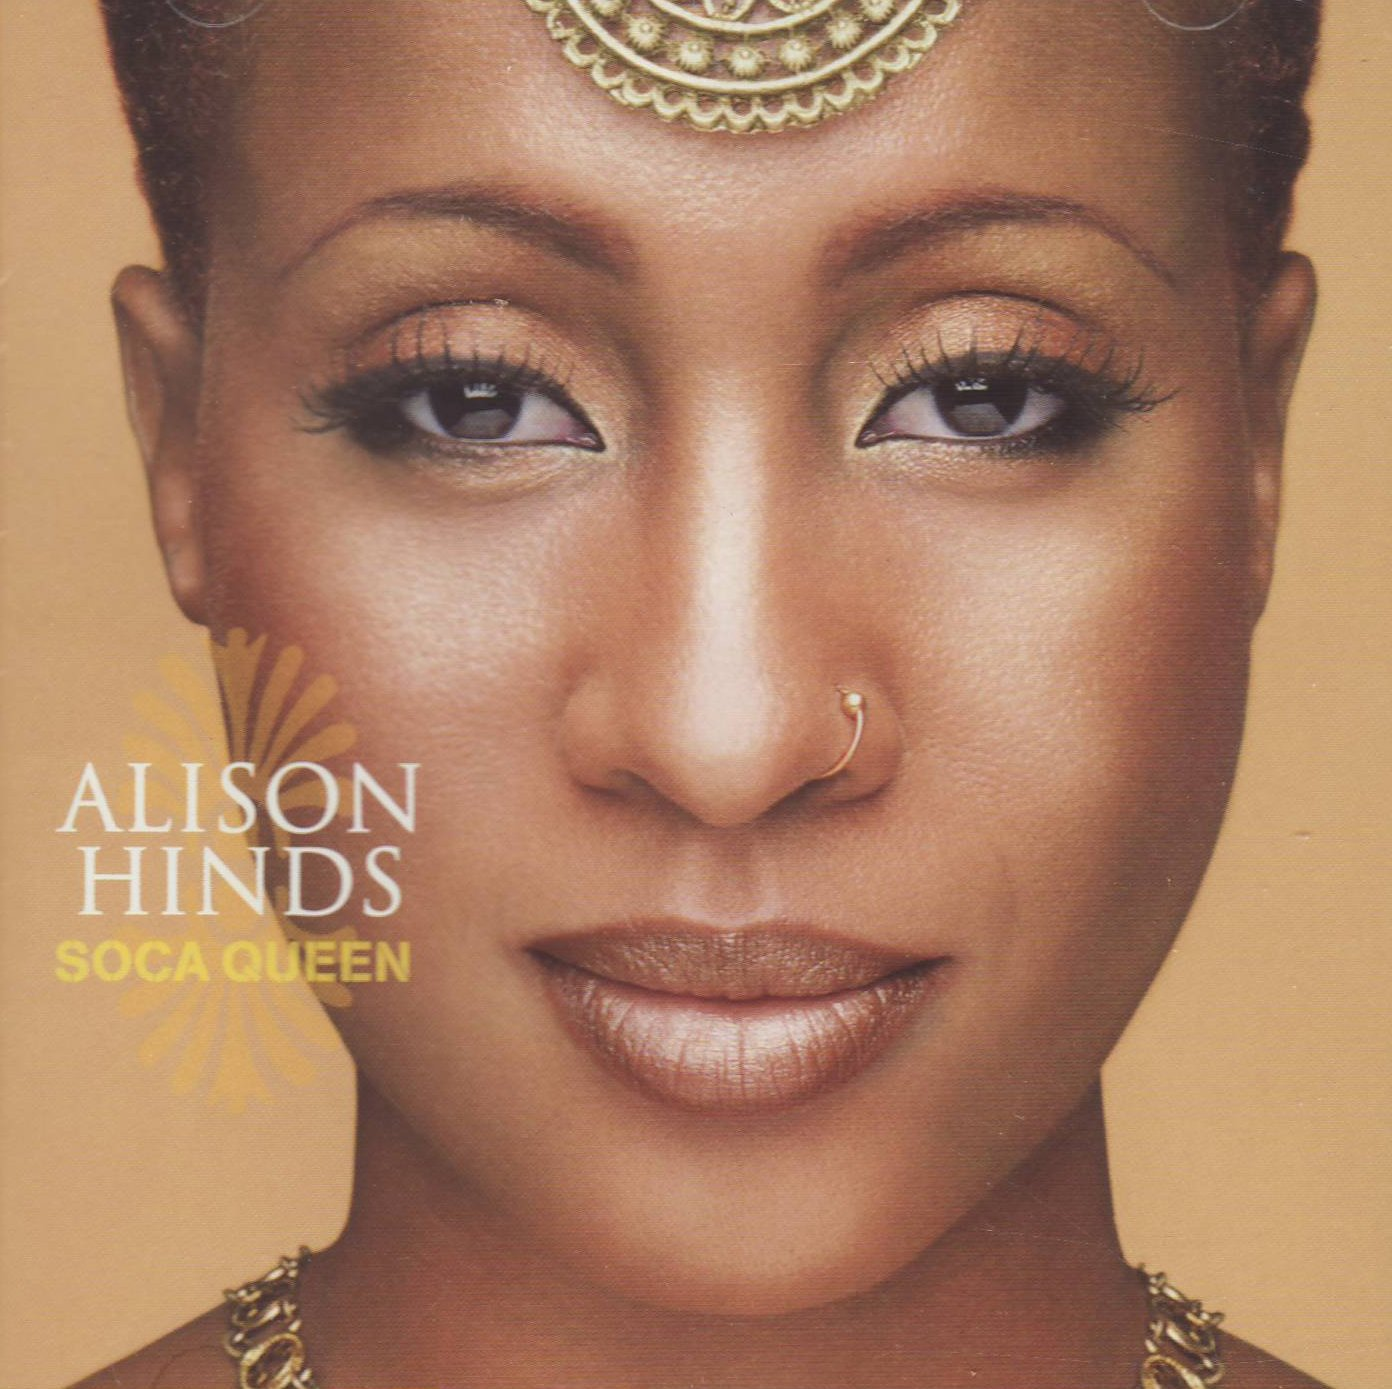 Alison Hinds 2013